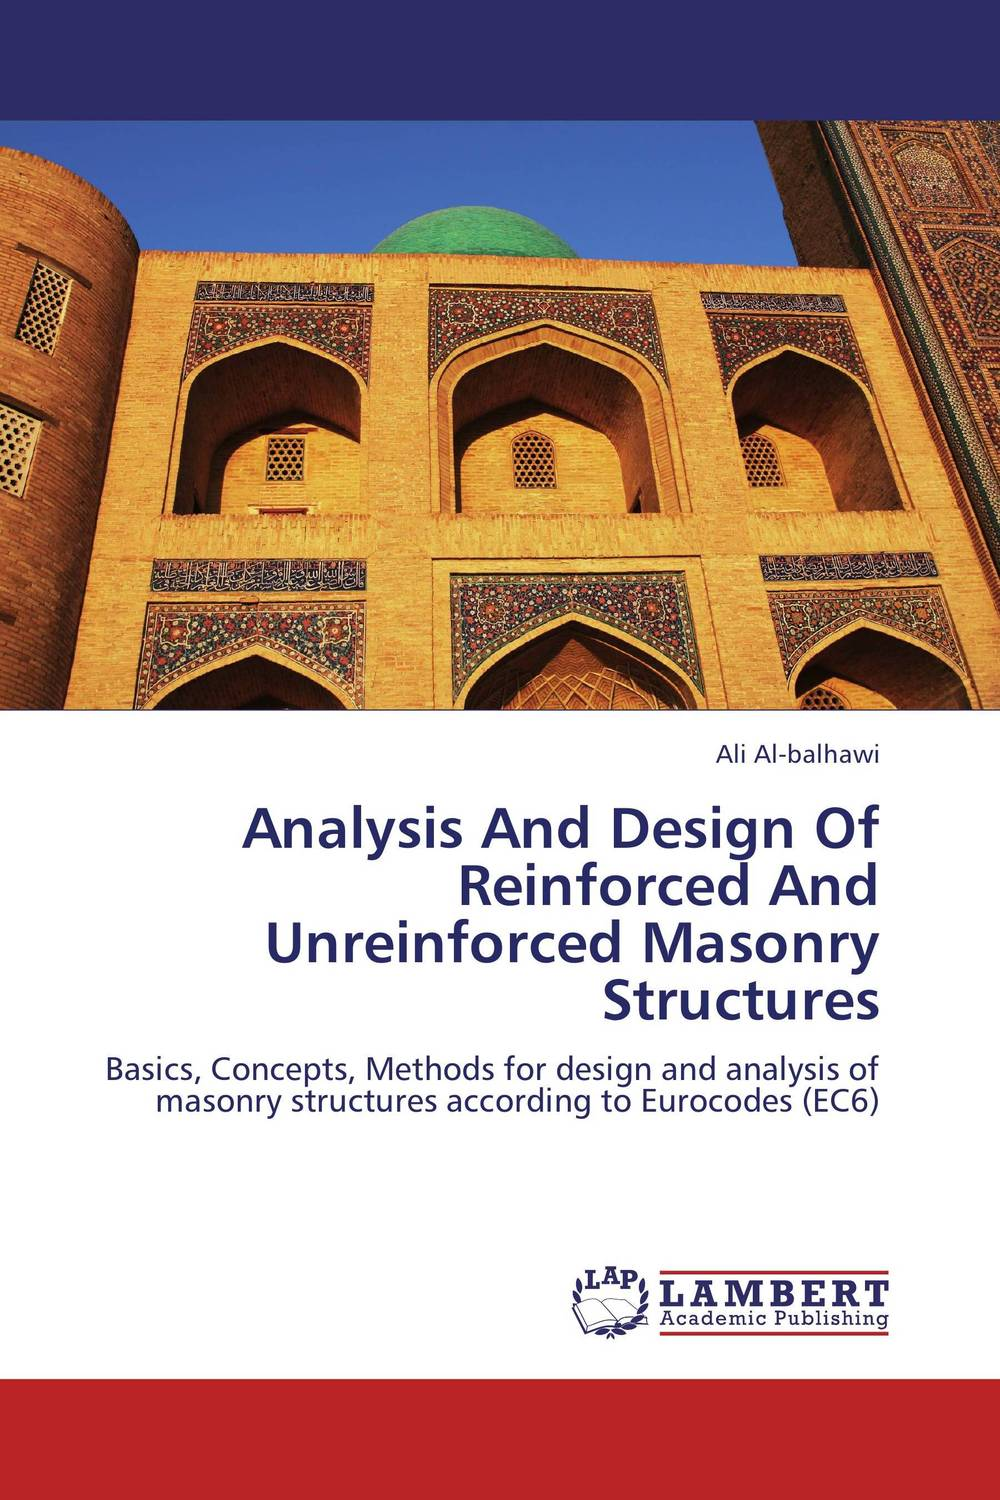 Analysis And Design Of Reinforced And Unreinforced Masonry Structures composite structures design safety and innovation